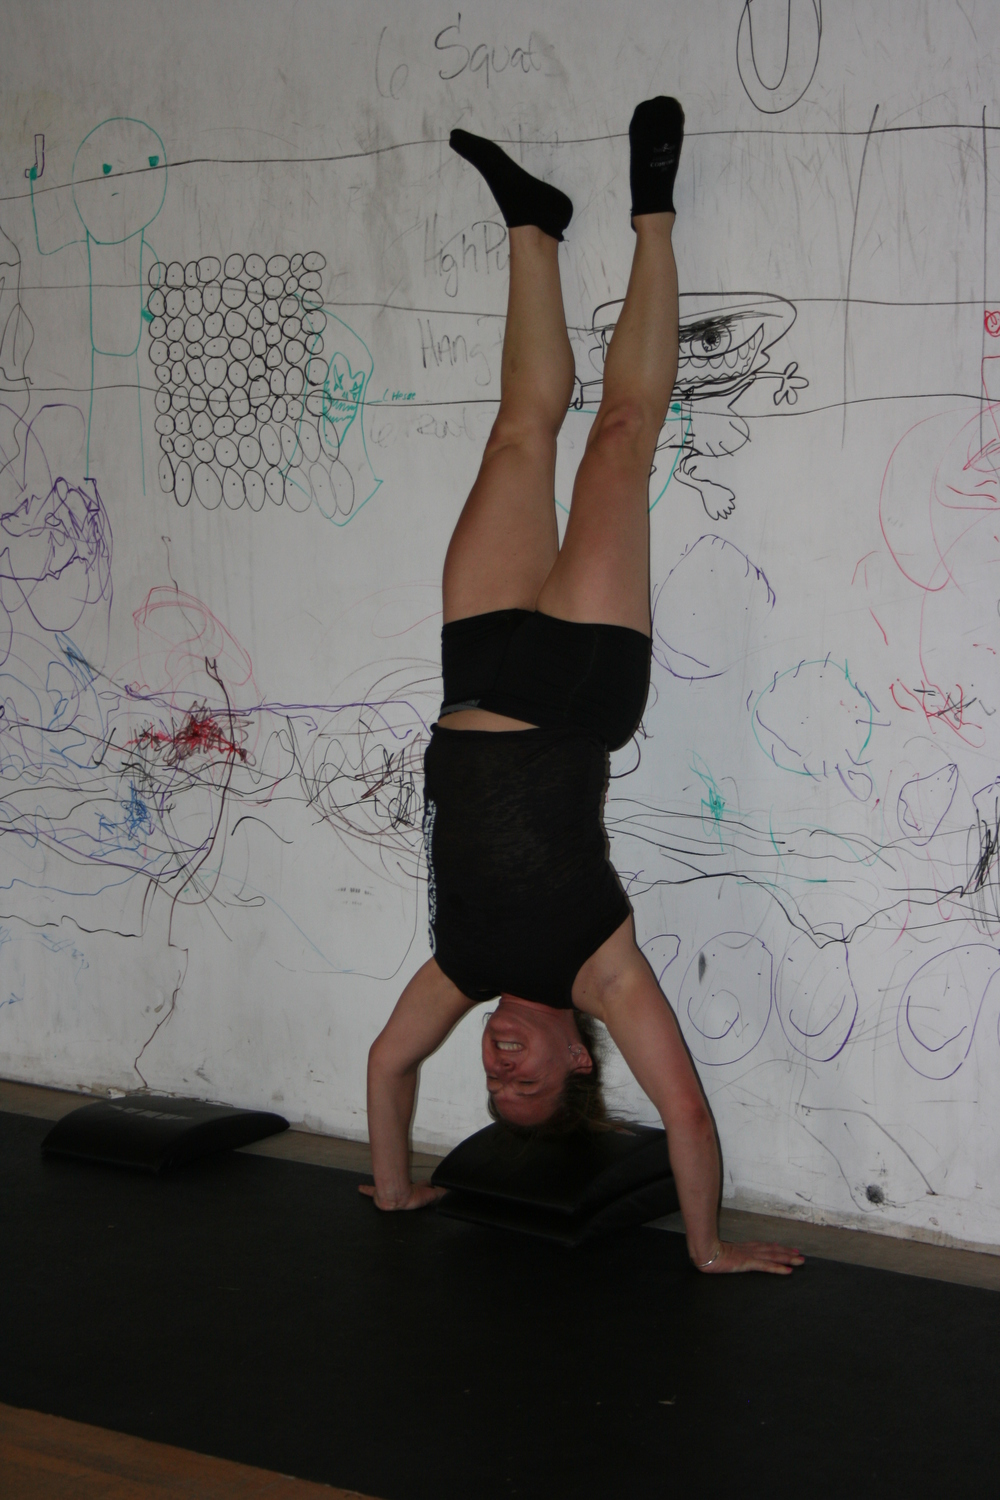 Angela doing handstand push-ups back on April 29th, 2012.